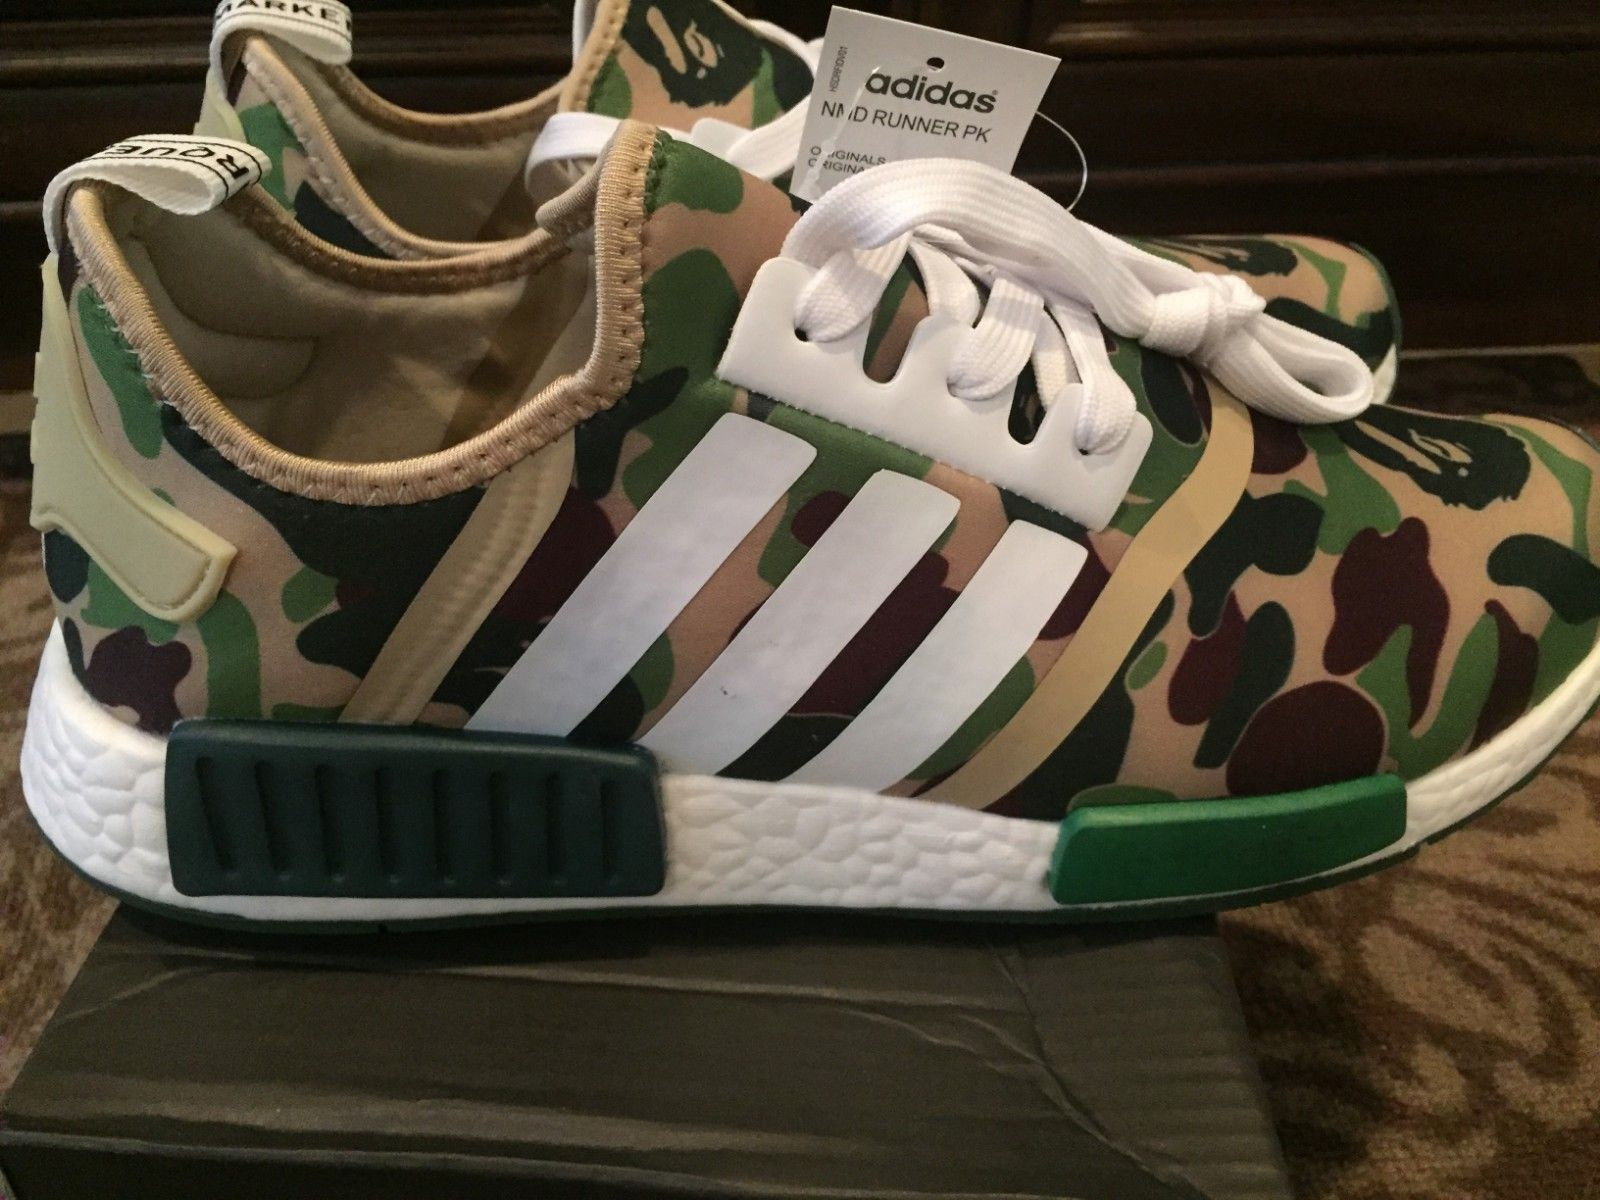 Details about NEW IN THE BOX ADIDAS NMD_R1 D96617 GREEN ARMY